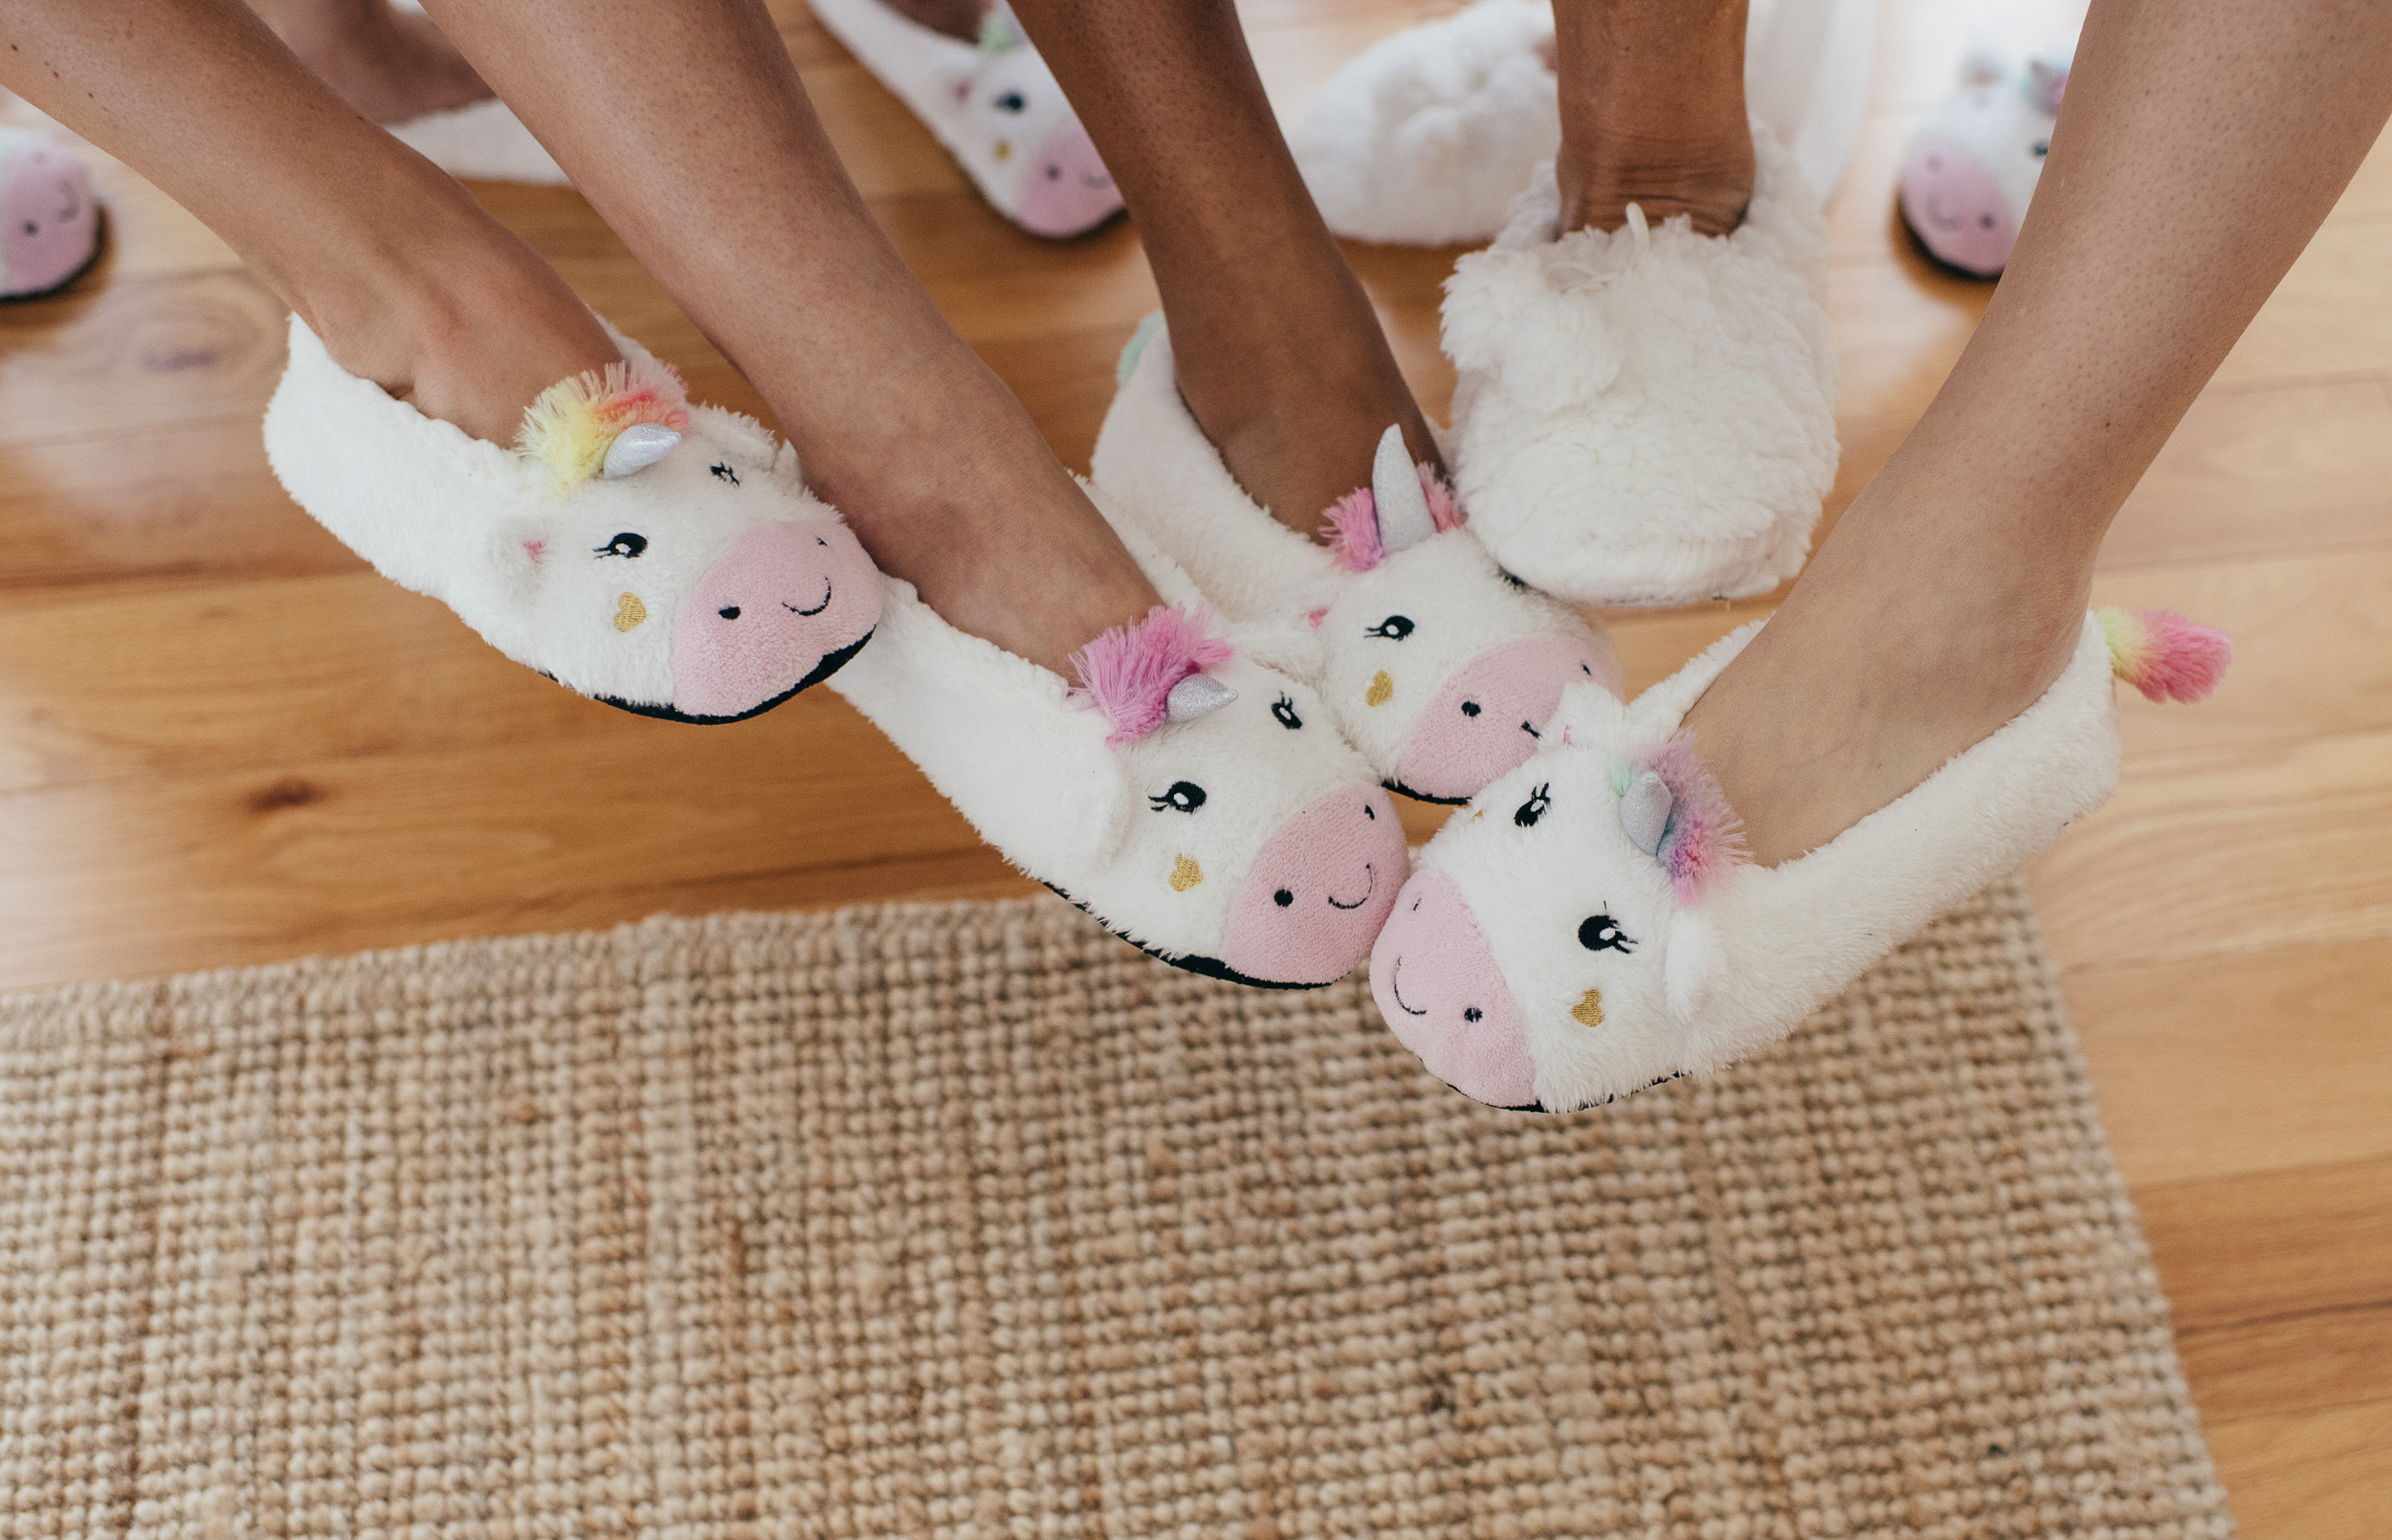 Wedding unicorn slippers